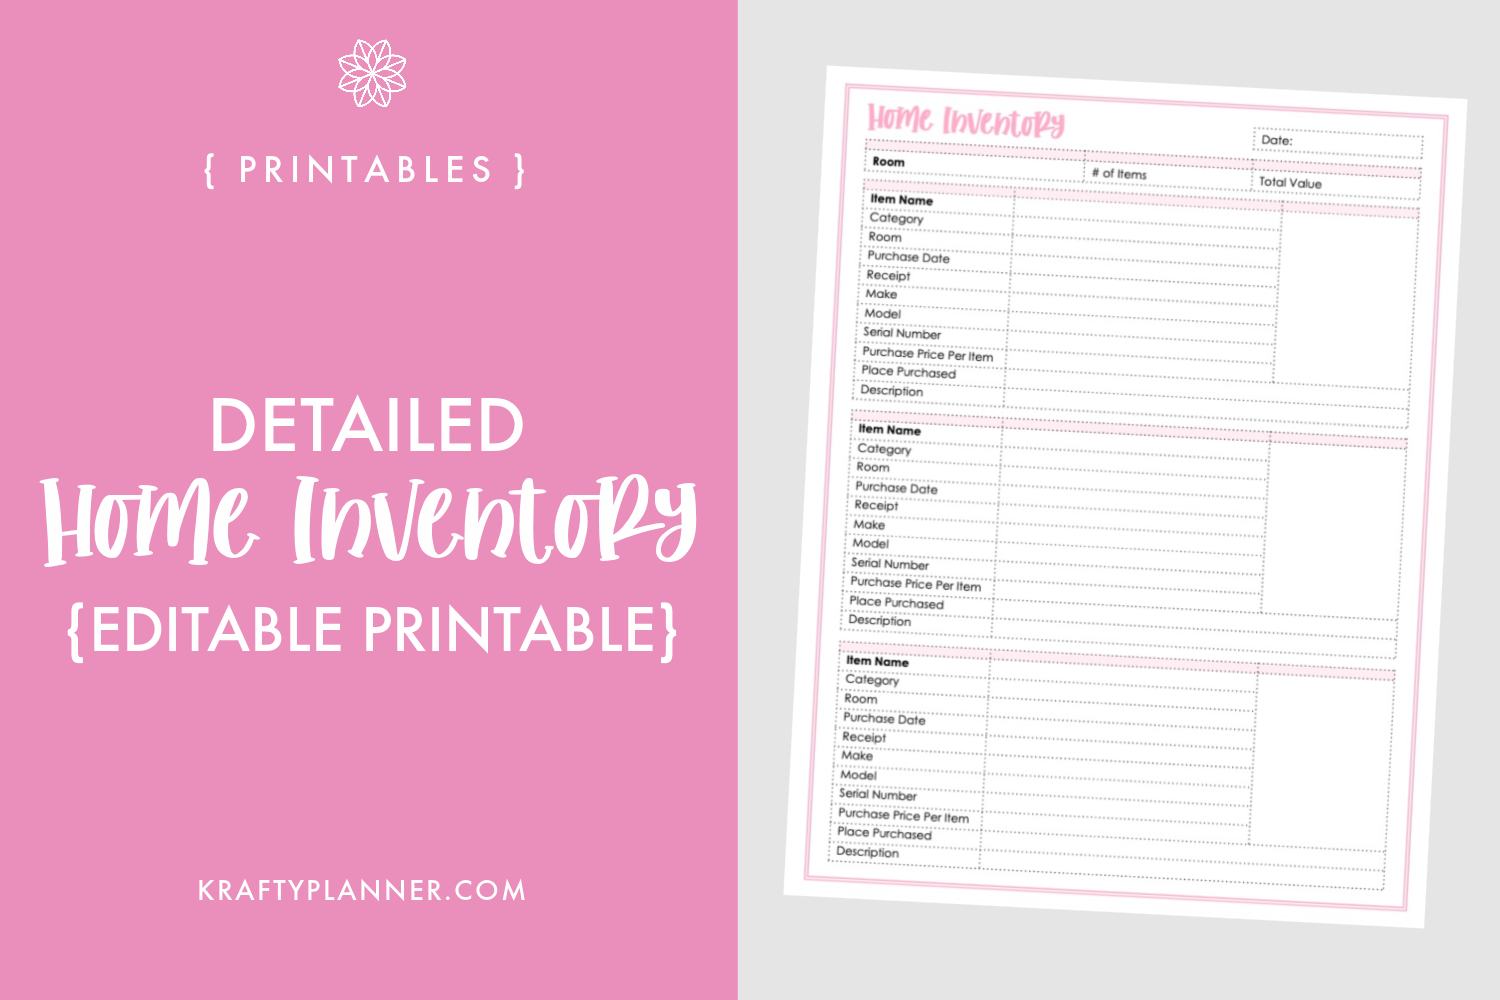 Detailed Home Inventory Add-On {Editable Printable} Main Image.png